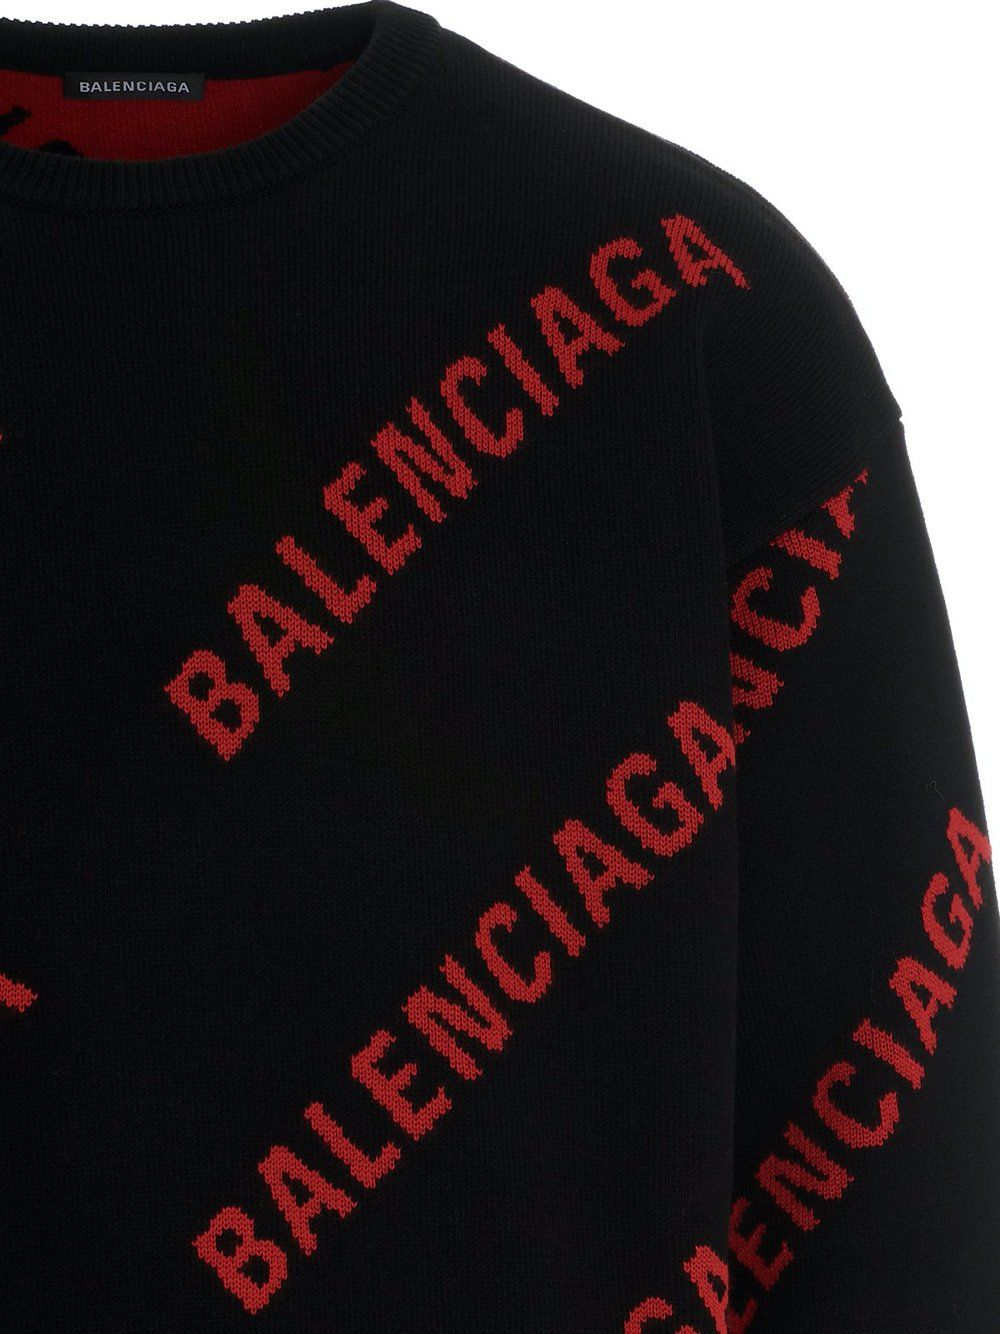 BALENCIAGA All Over Logo Knitted Sweatshirt Black/Red - Maison De Fashion